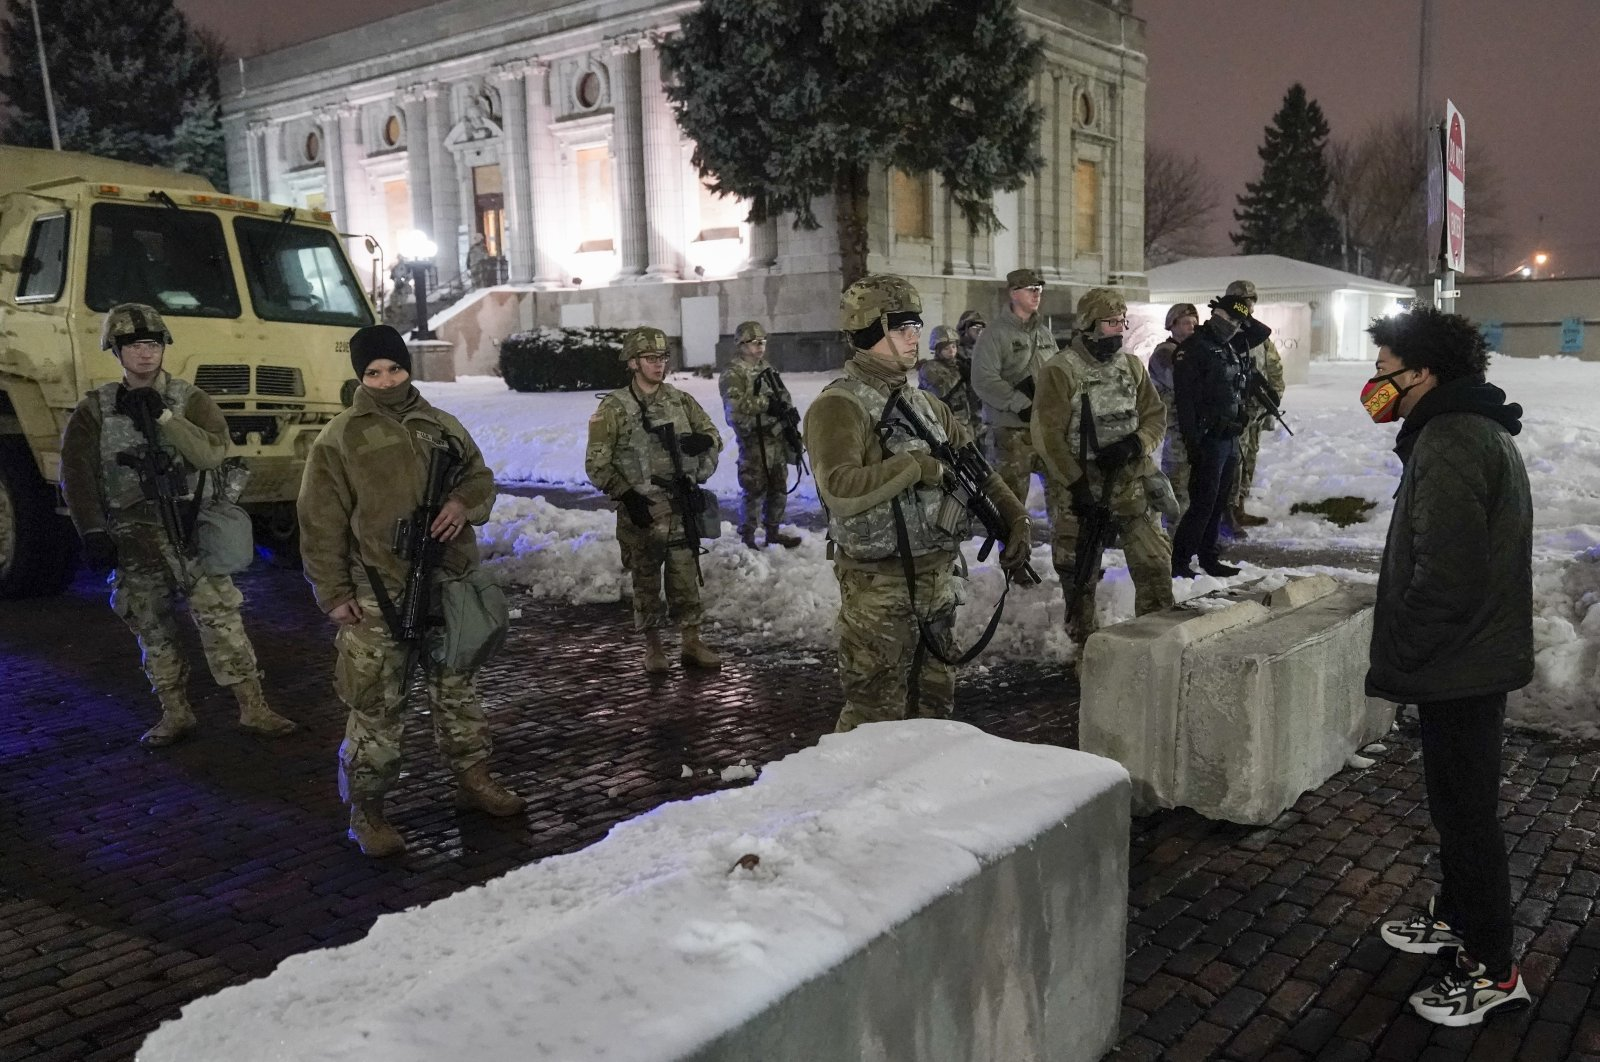 A protester confronts National Guard members outside a museum, in Kenosha, Wis., U.S, Jan. 5, 2021. (AP File Photo)